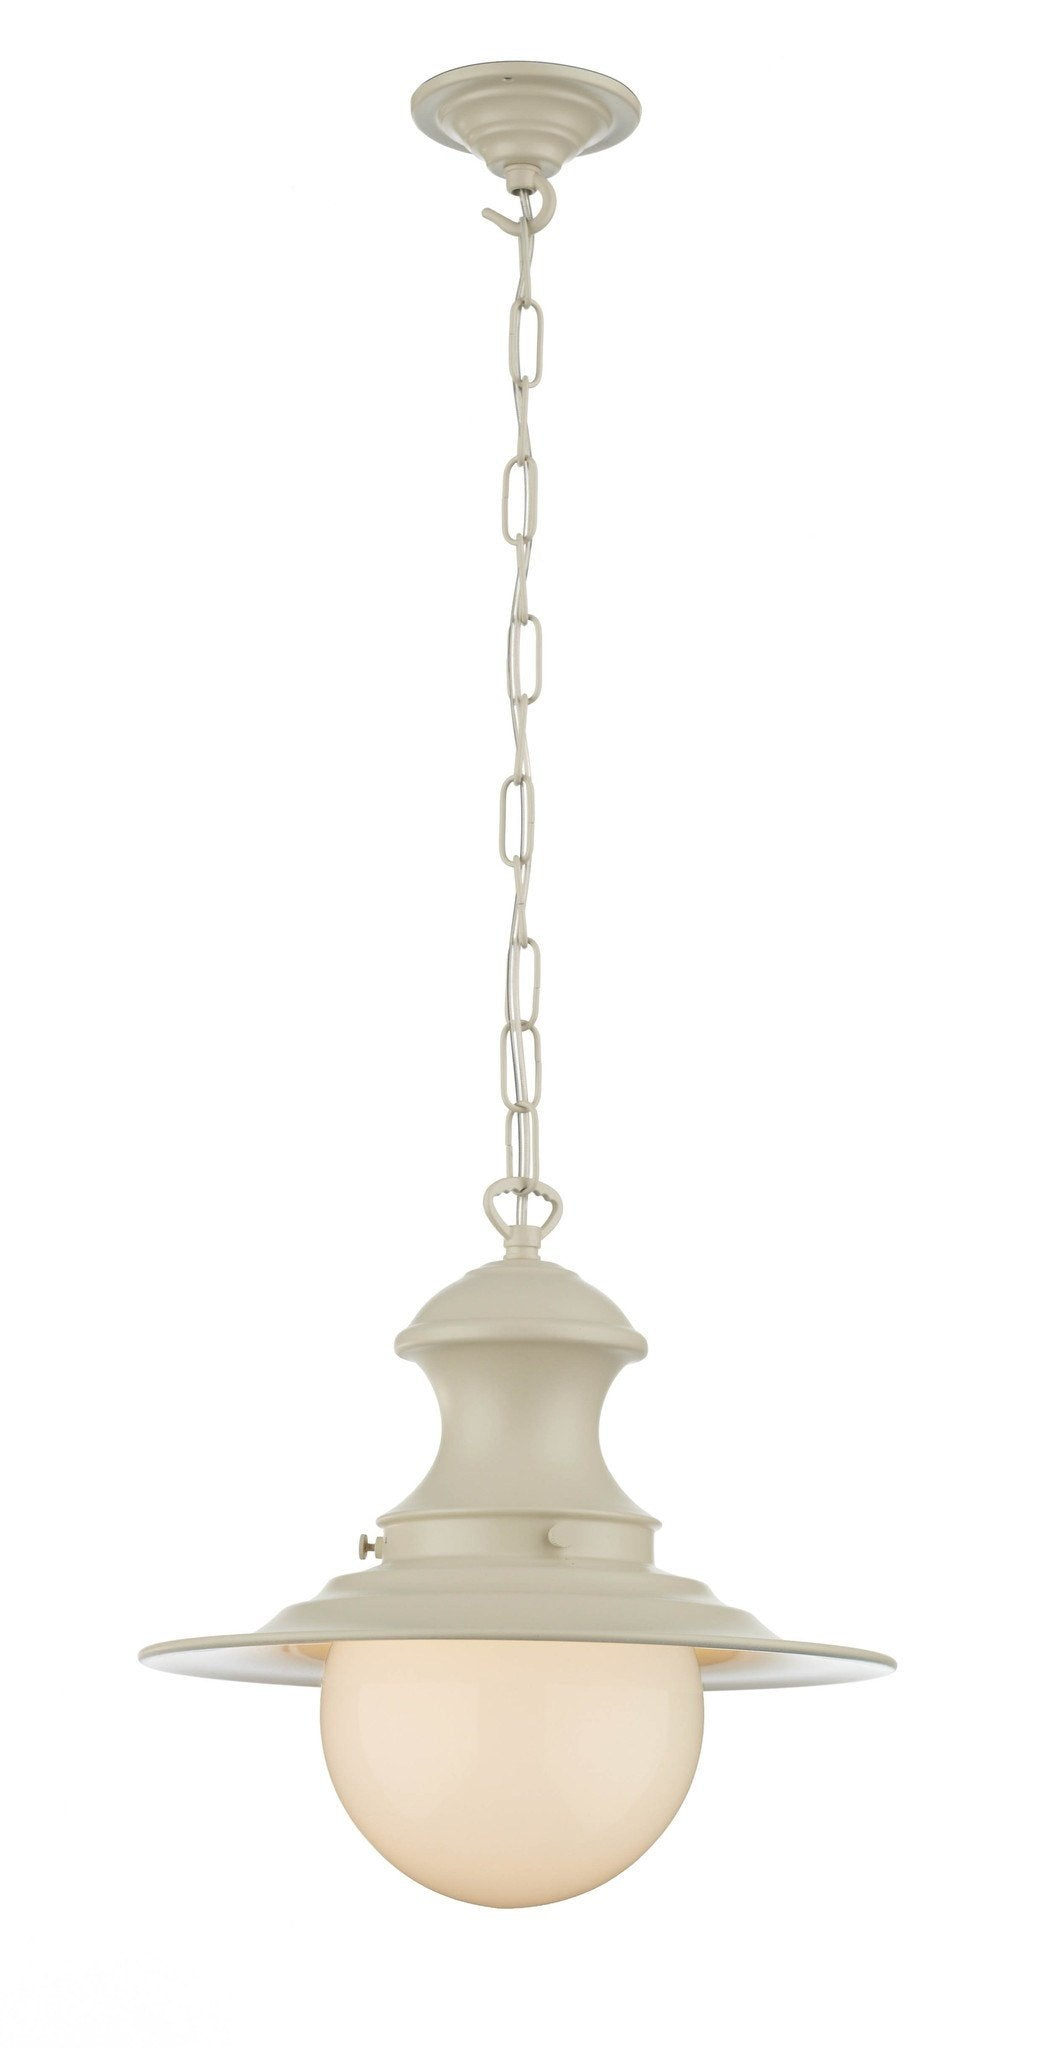 Small Station Lamp in Cream - London Lighting - 1